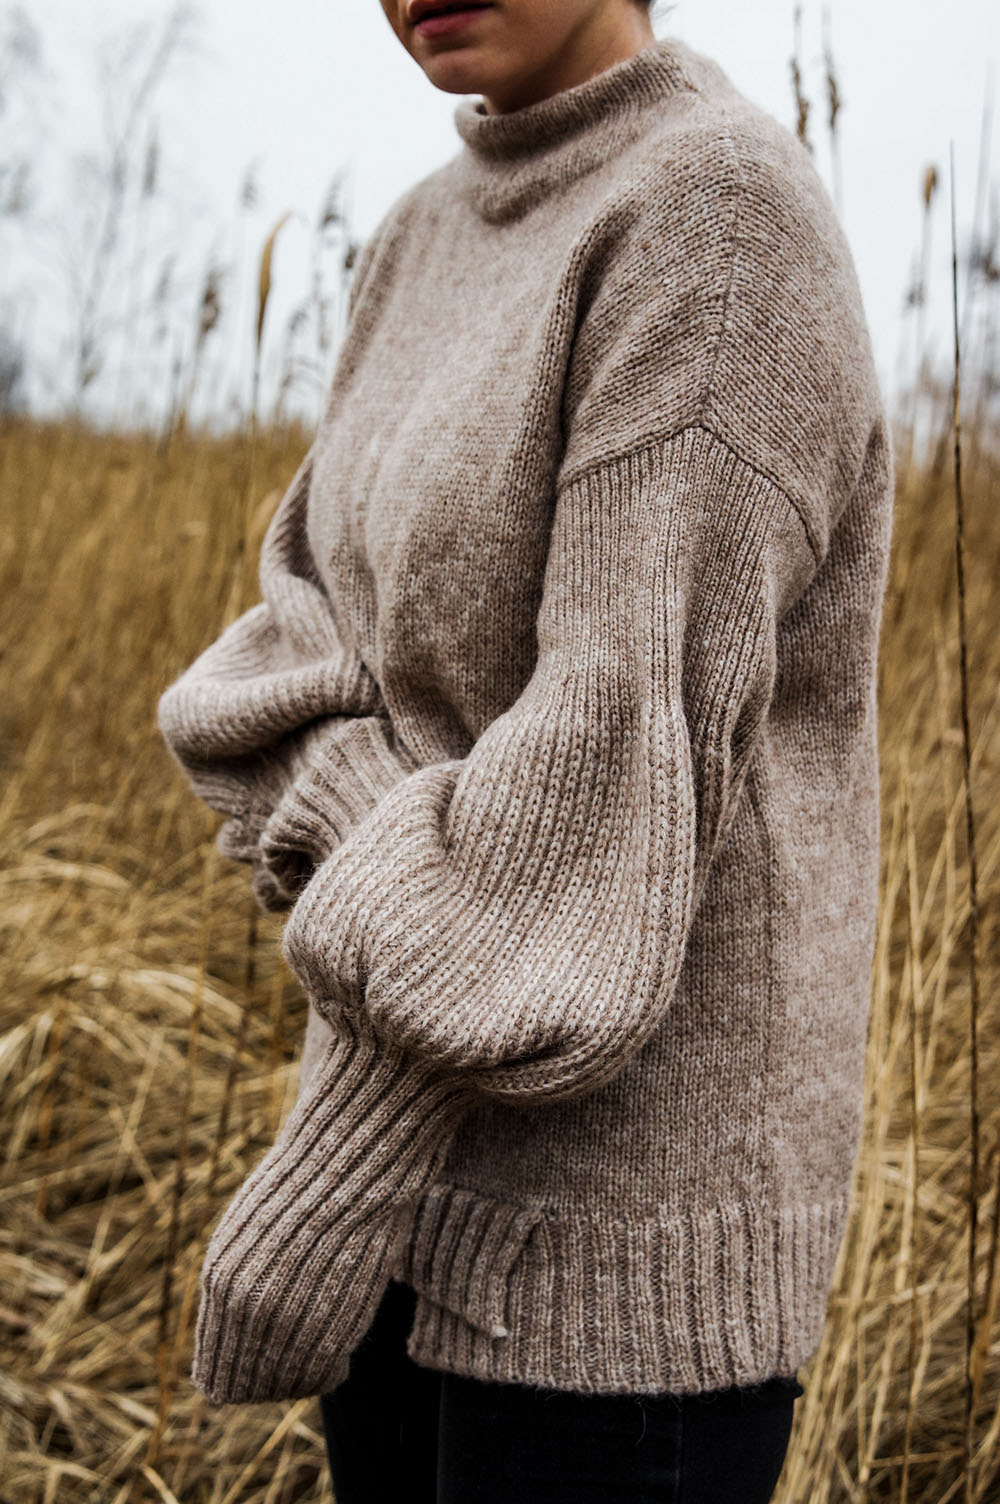 The-one-sustainable-fashion-brand-tou-need-to-add-to-your-wardrobe-sweater-handmade-spring-outfit.